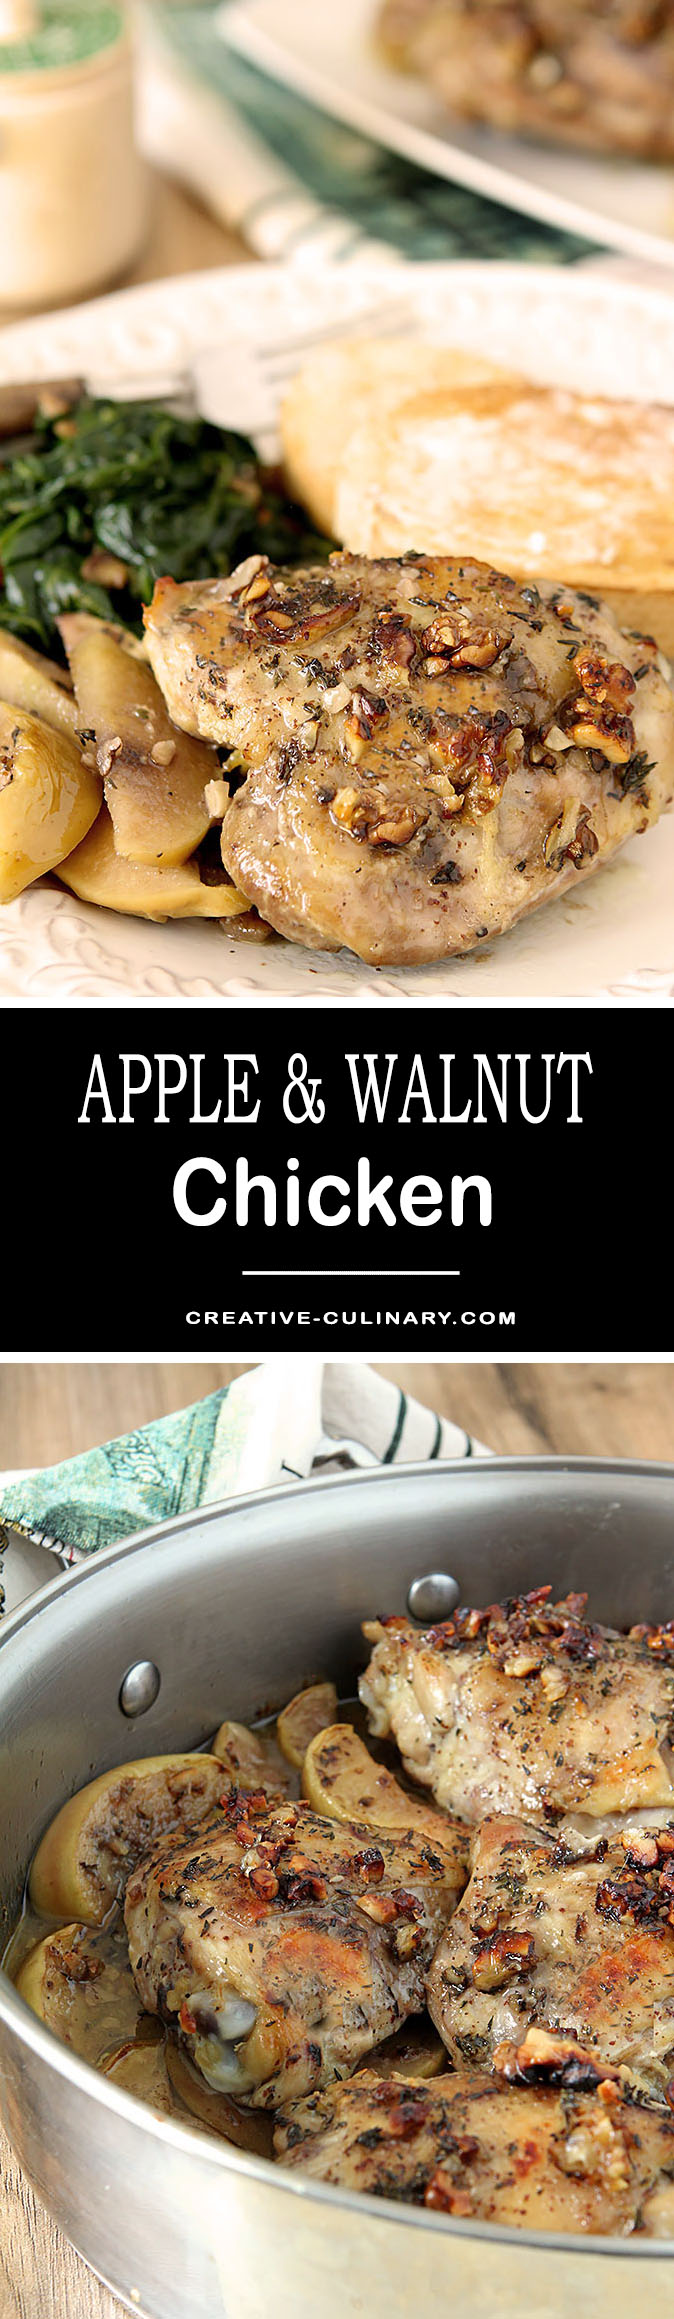 This Apple and Walnut Chicken with Honey Mustard Dressing is an easy dinner all year round. The combination of chicken, apples, maple syrup and walnuts is complemented with a delicious Honey Mustard Dressing.